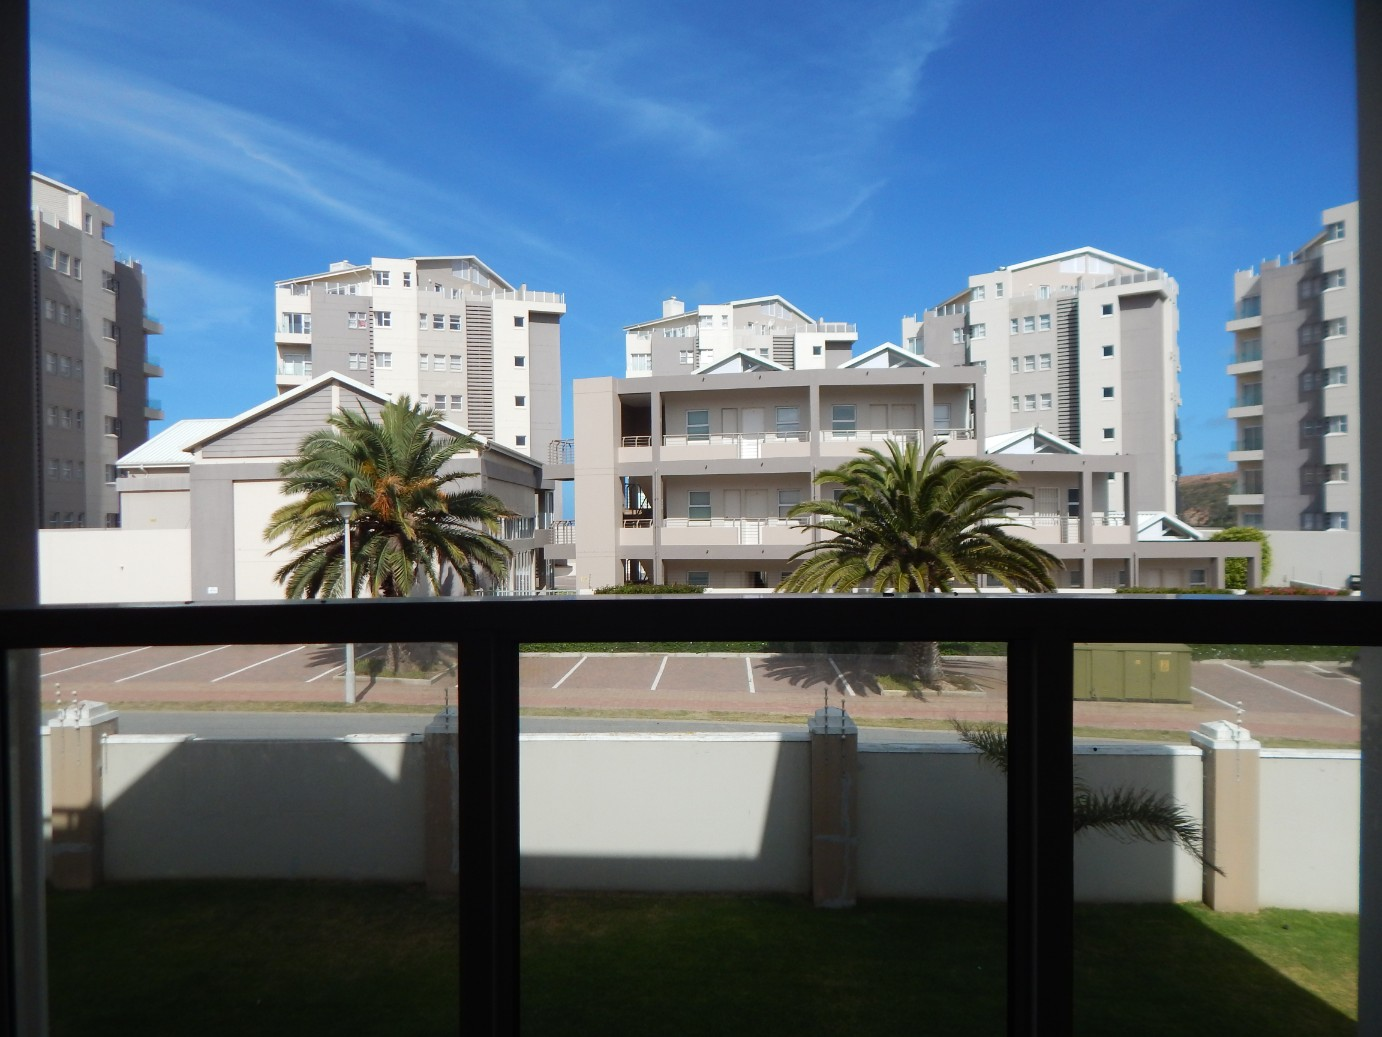 3 Bedroom Apartment for sale in Diaz Beach ENT0080239 : photo#20